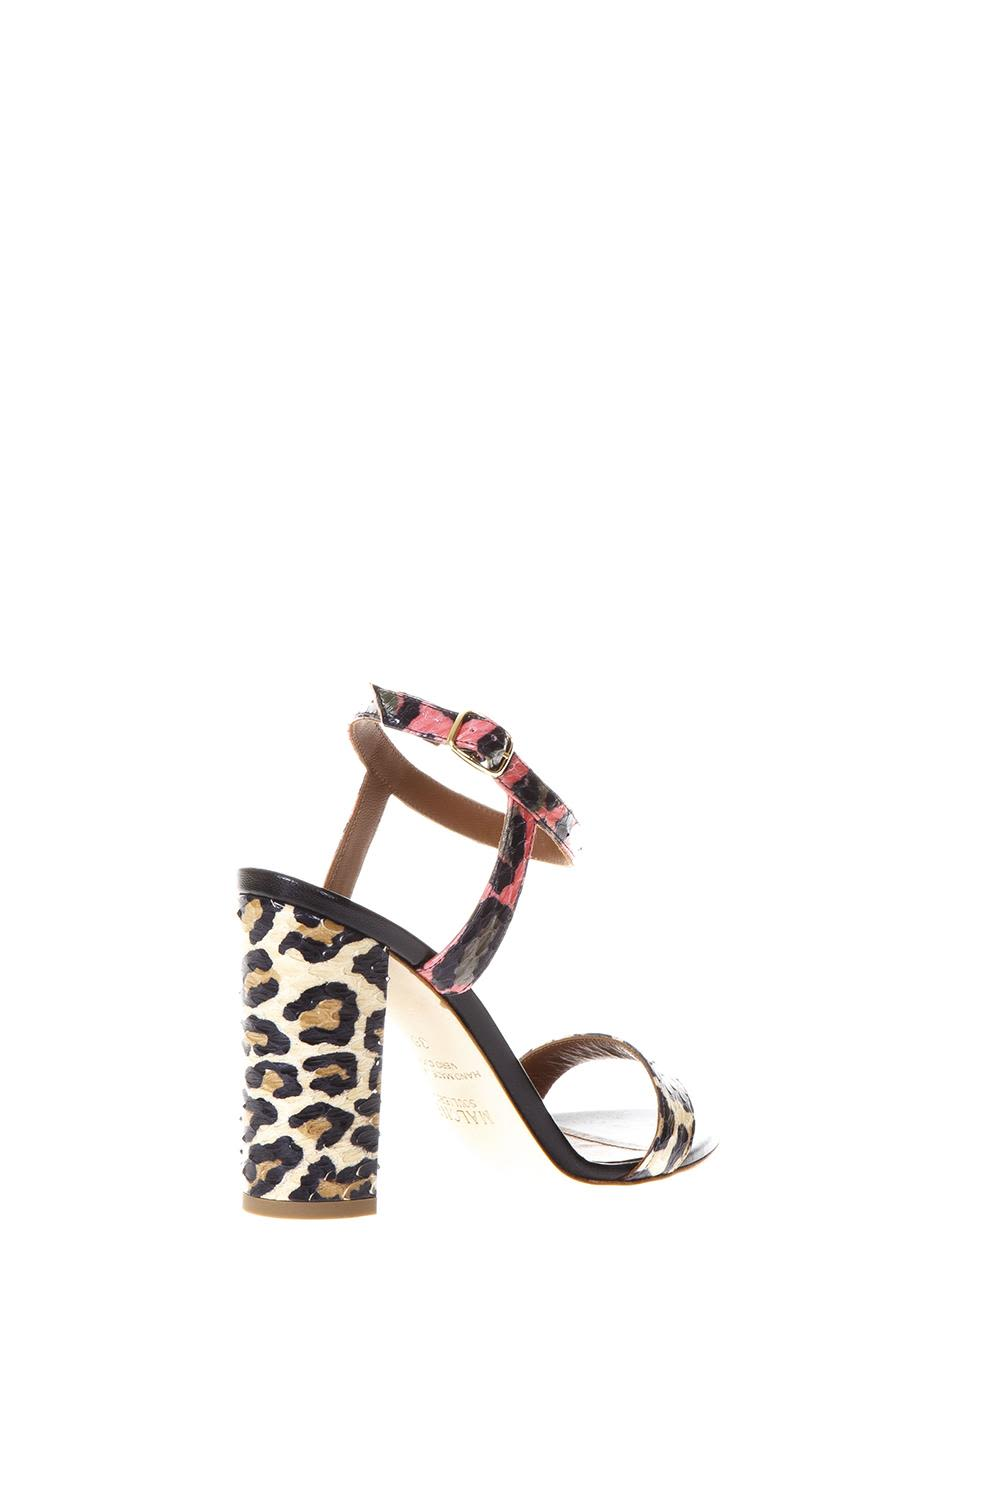 MALONE SOULIERS Ladida 1 Sandals Leopard Style Sale Hot Sale enthQt0m